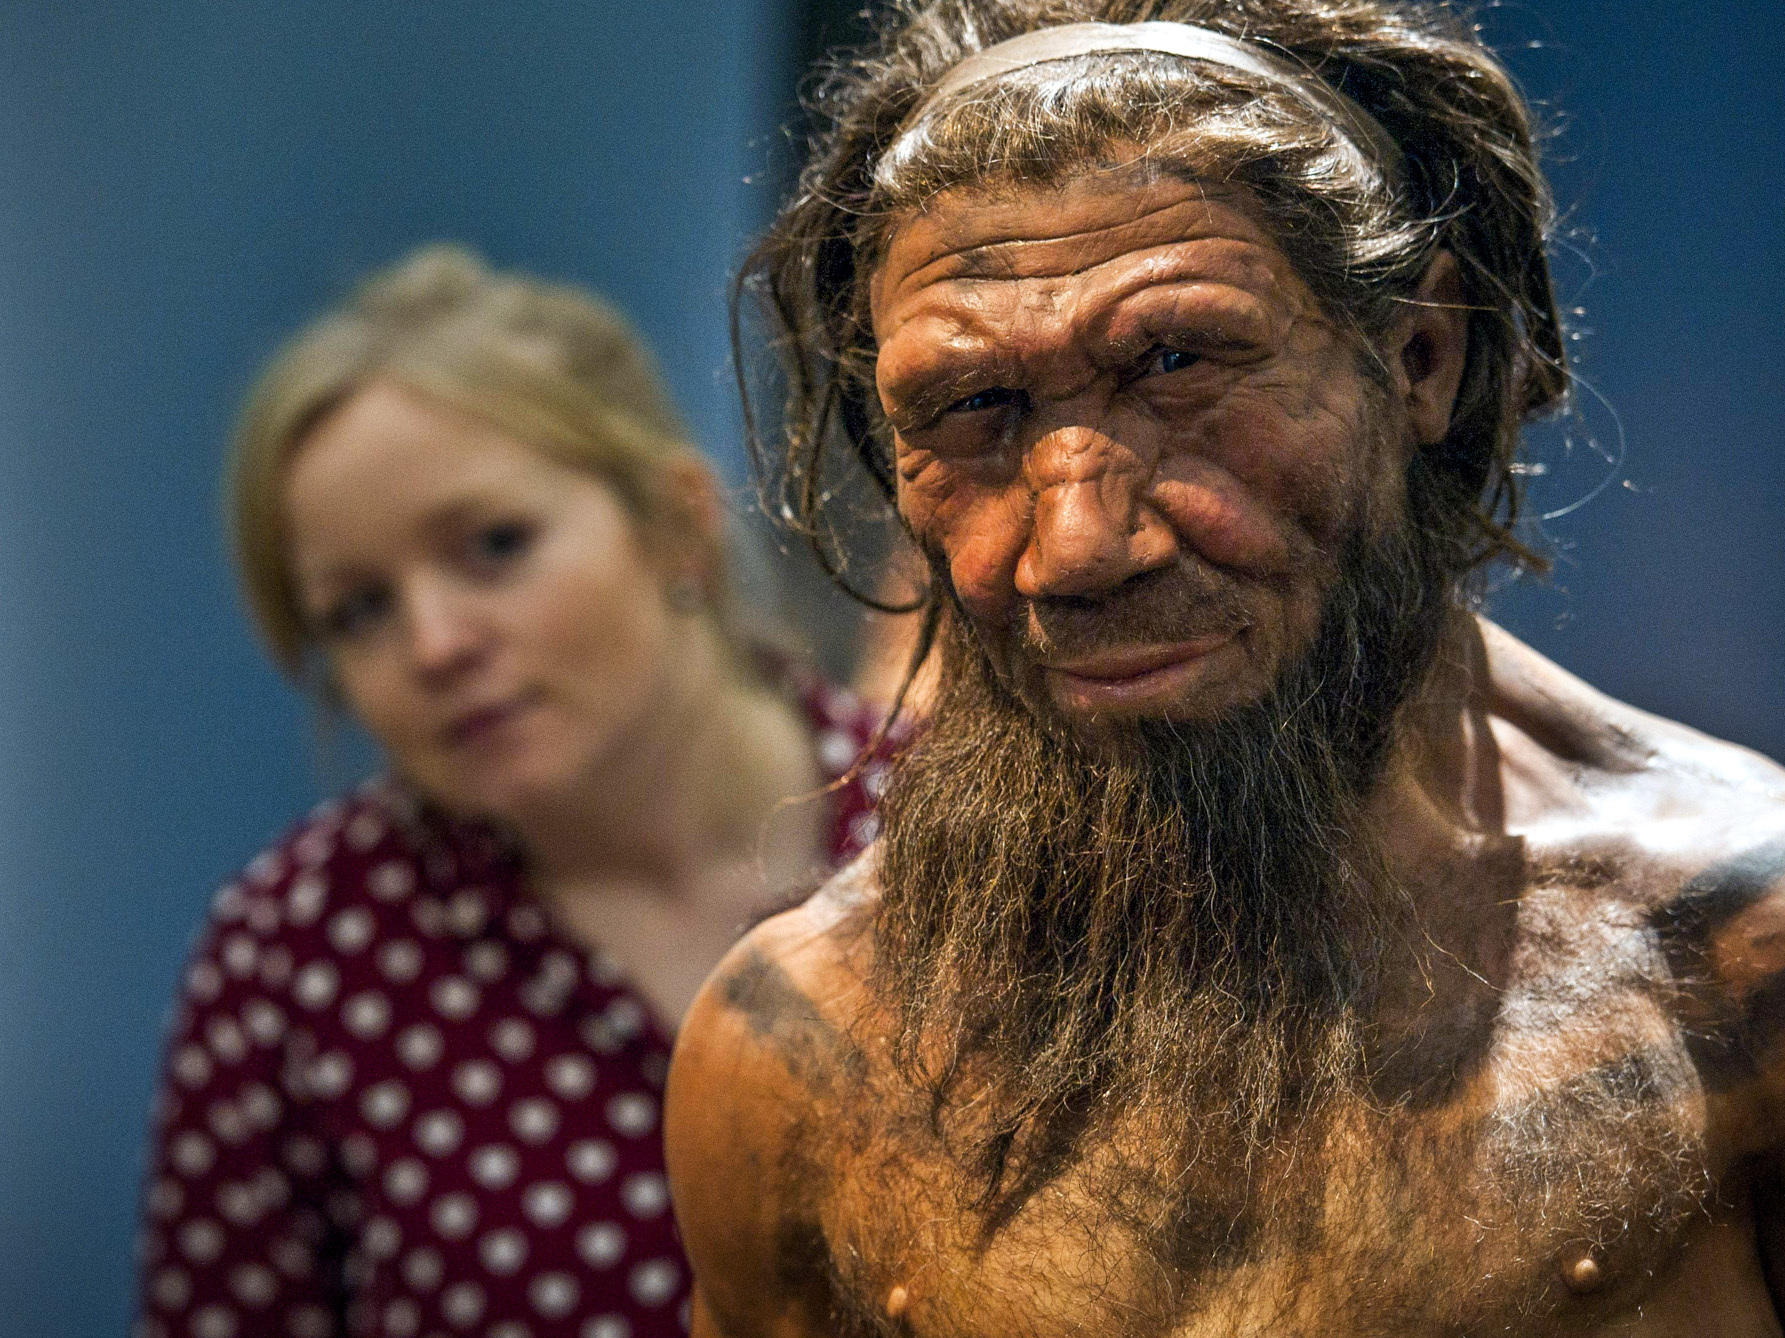 Neanderthal DNA Influences the Looks and Behavior of Modern Humans